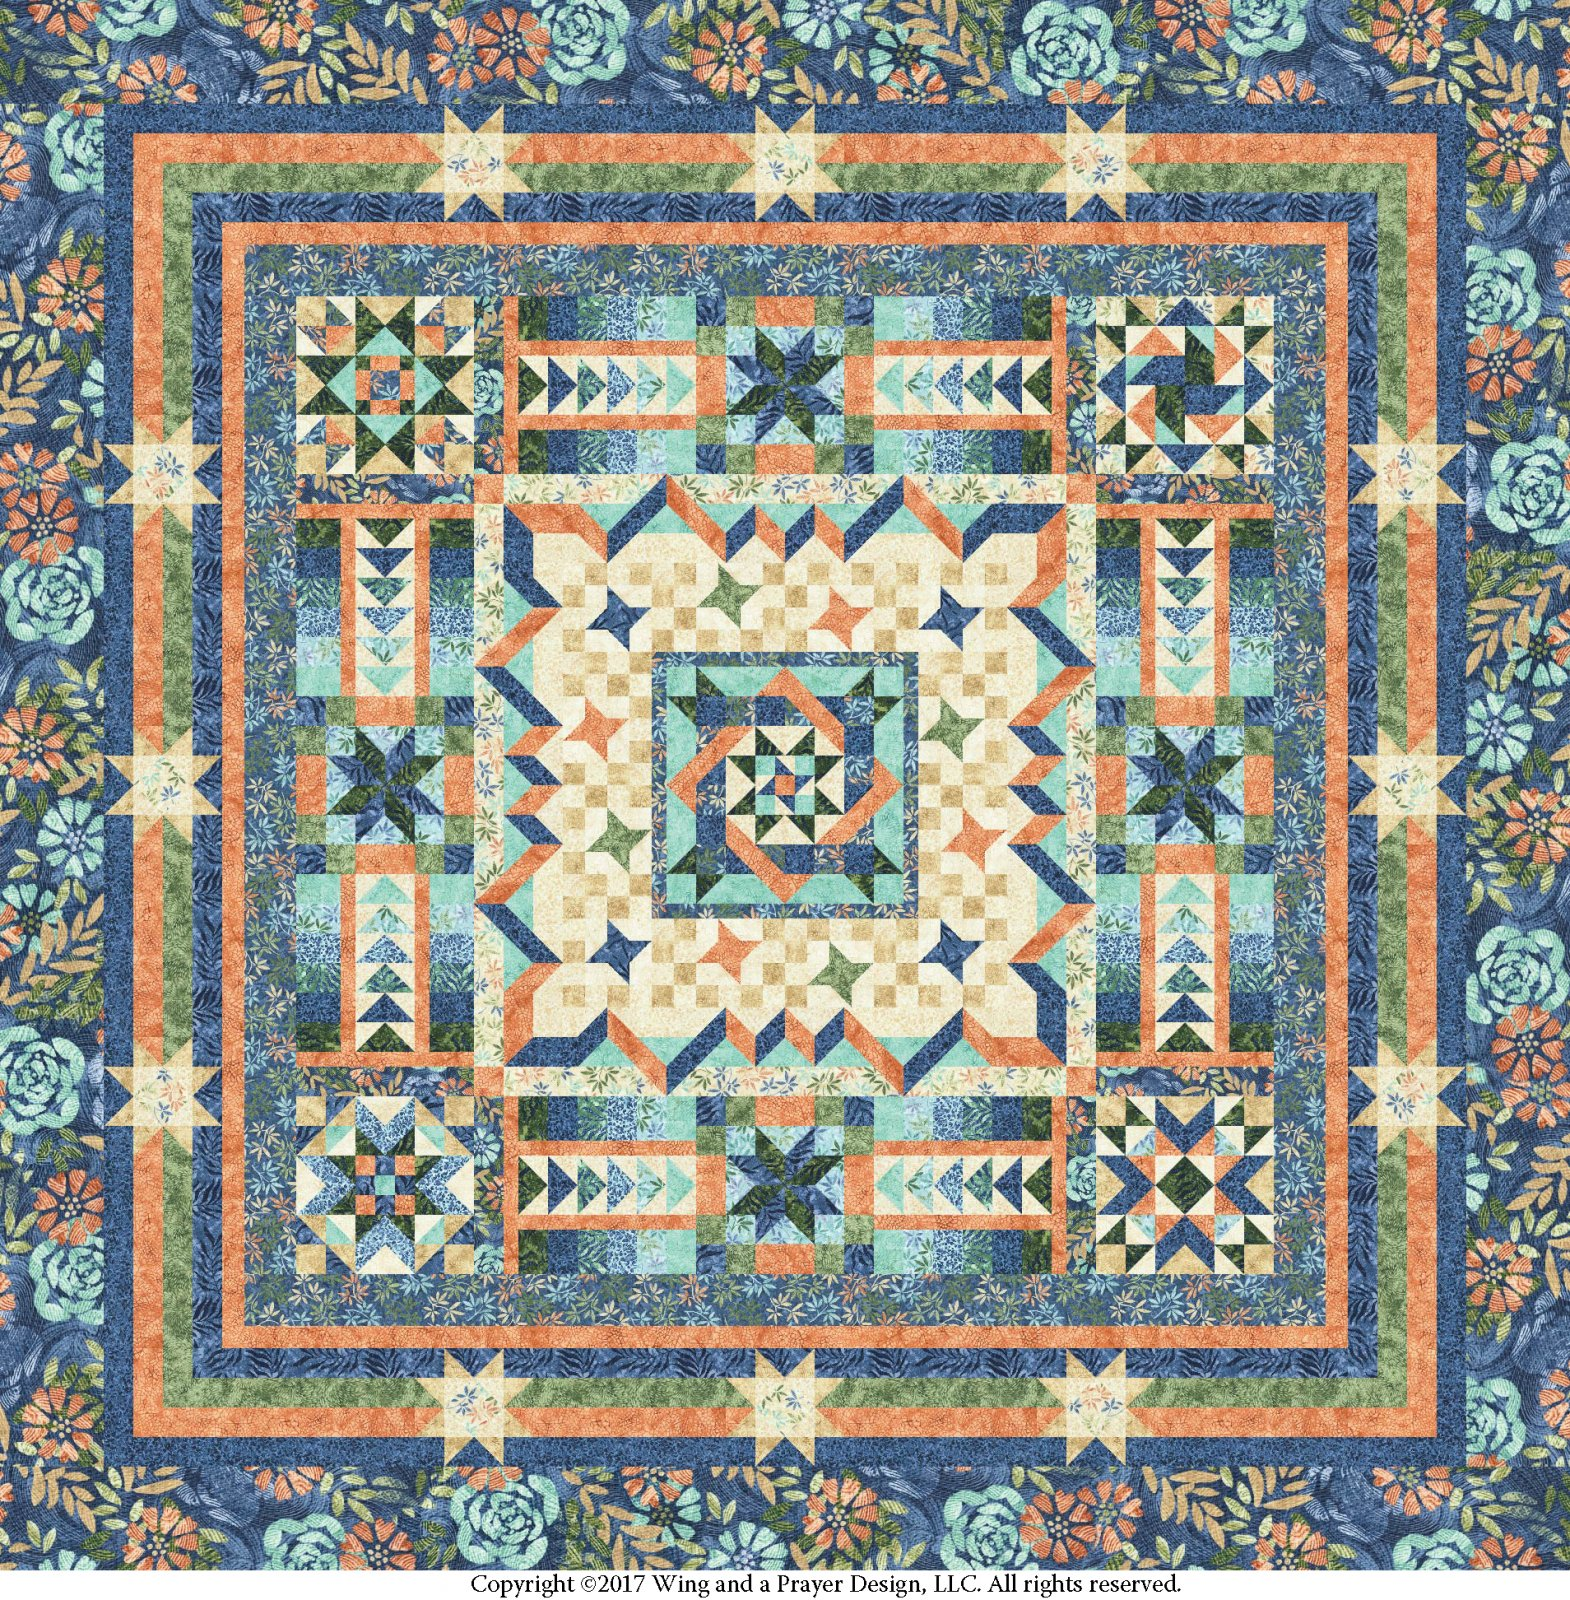 s to judith so we sale vintage a soon daughter jelly made pretty quilts law her my shabby this as and wedding cottages chic free quilt quiltmekiwi vibe the in for roll son decided loves present cottage motion be